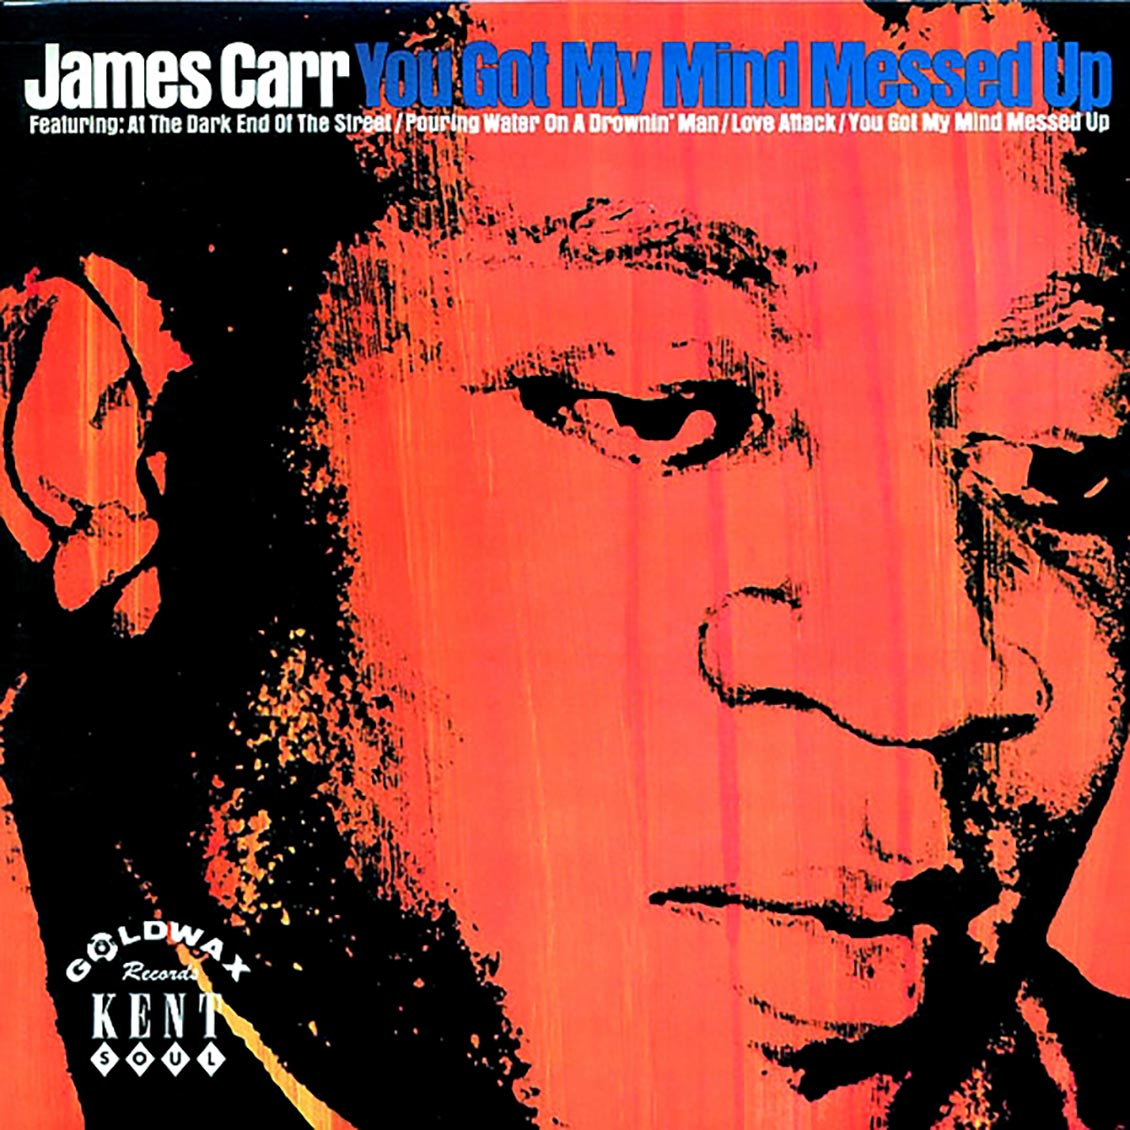 You Got My Mind Messed Up - James Carr - Musik - KENT SOUL - 0029667221115 - August 29, 2002